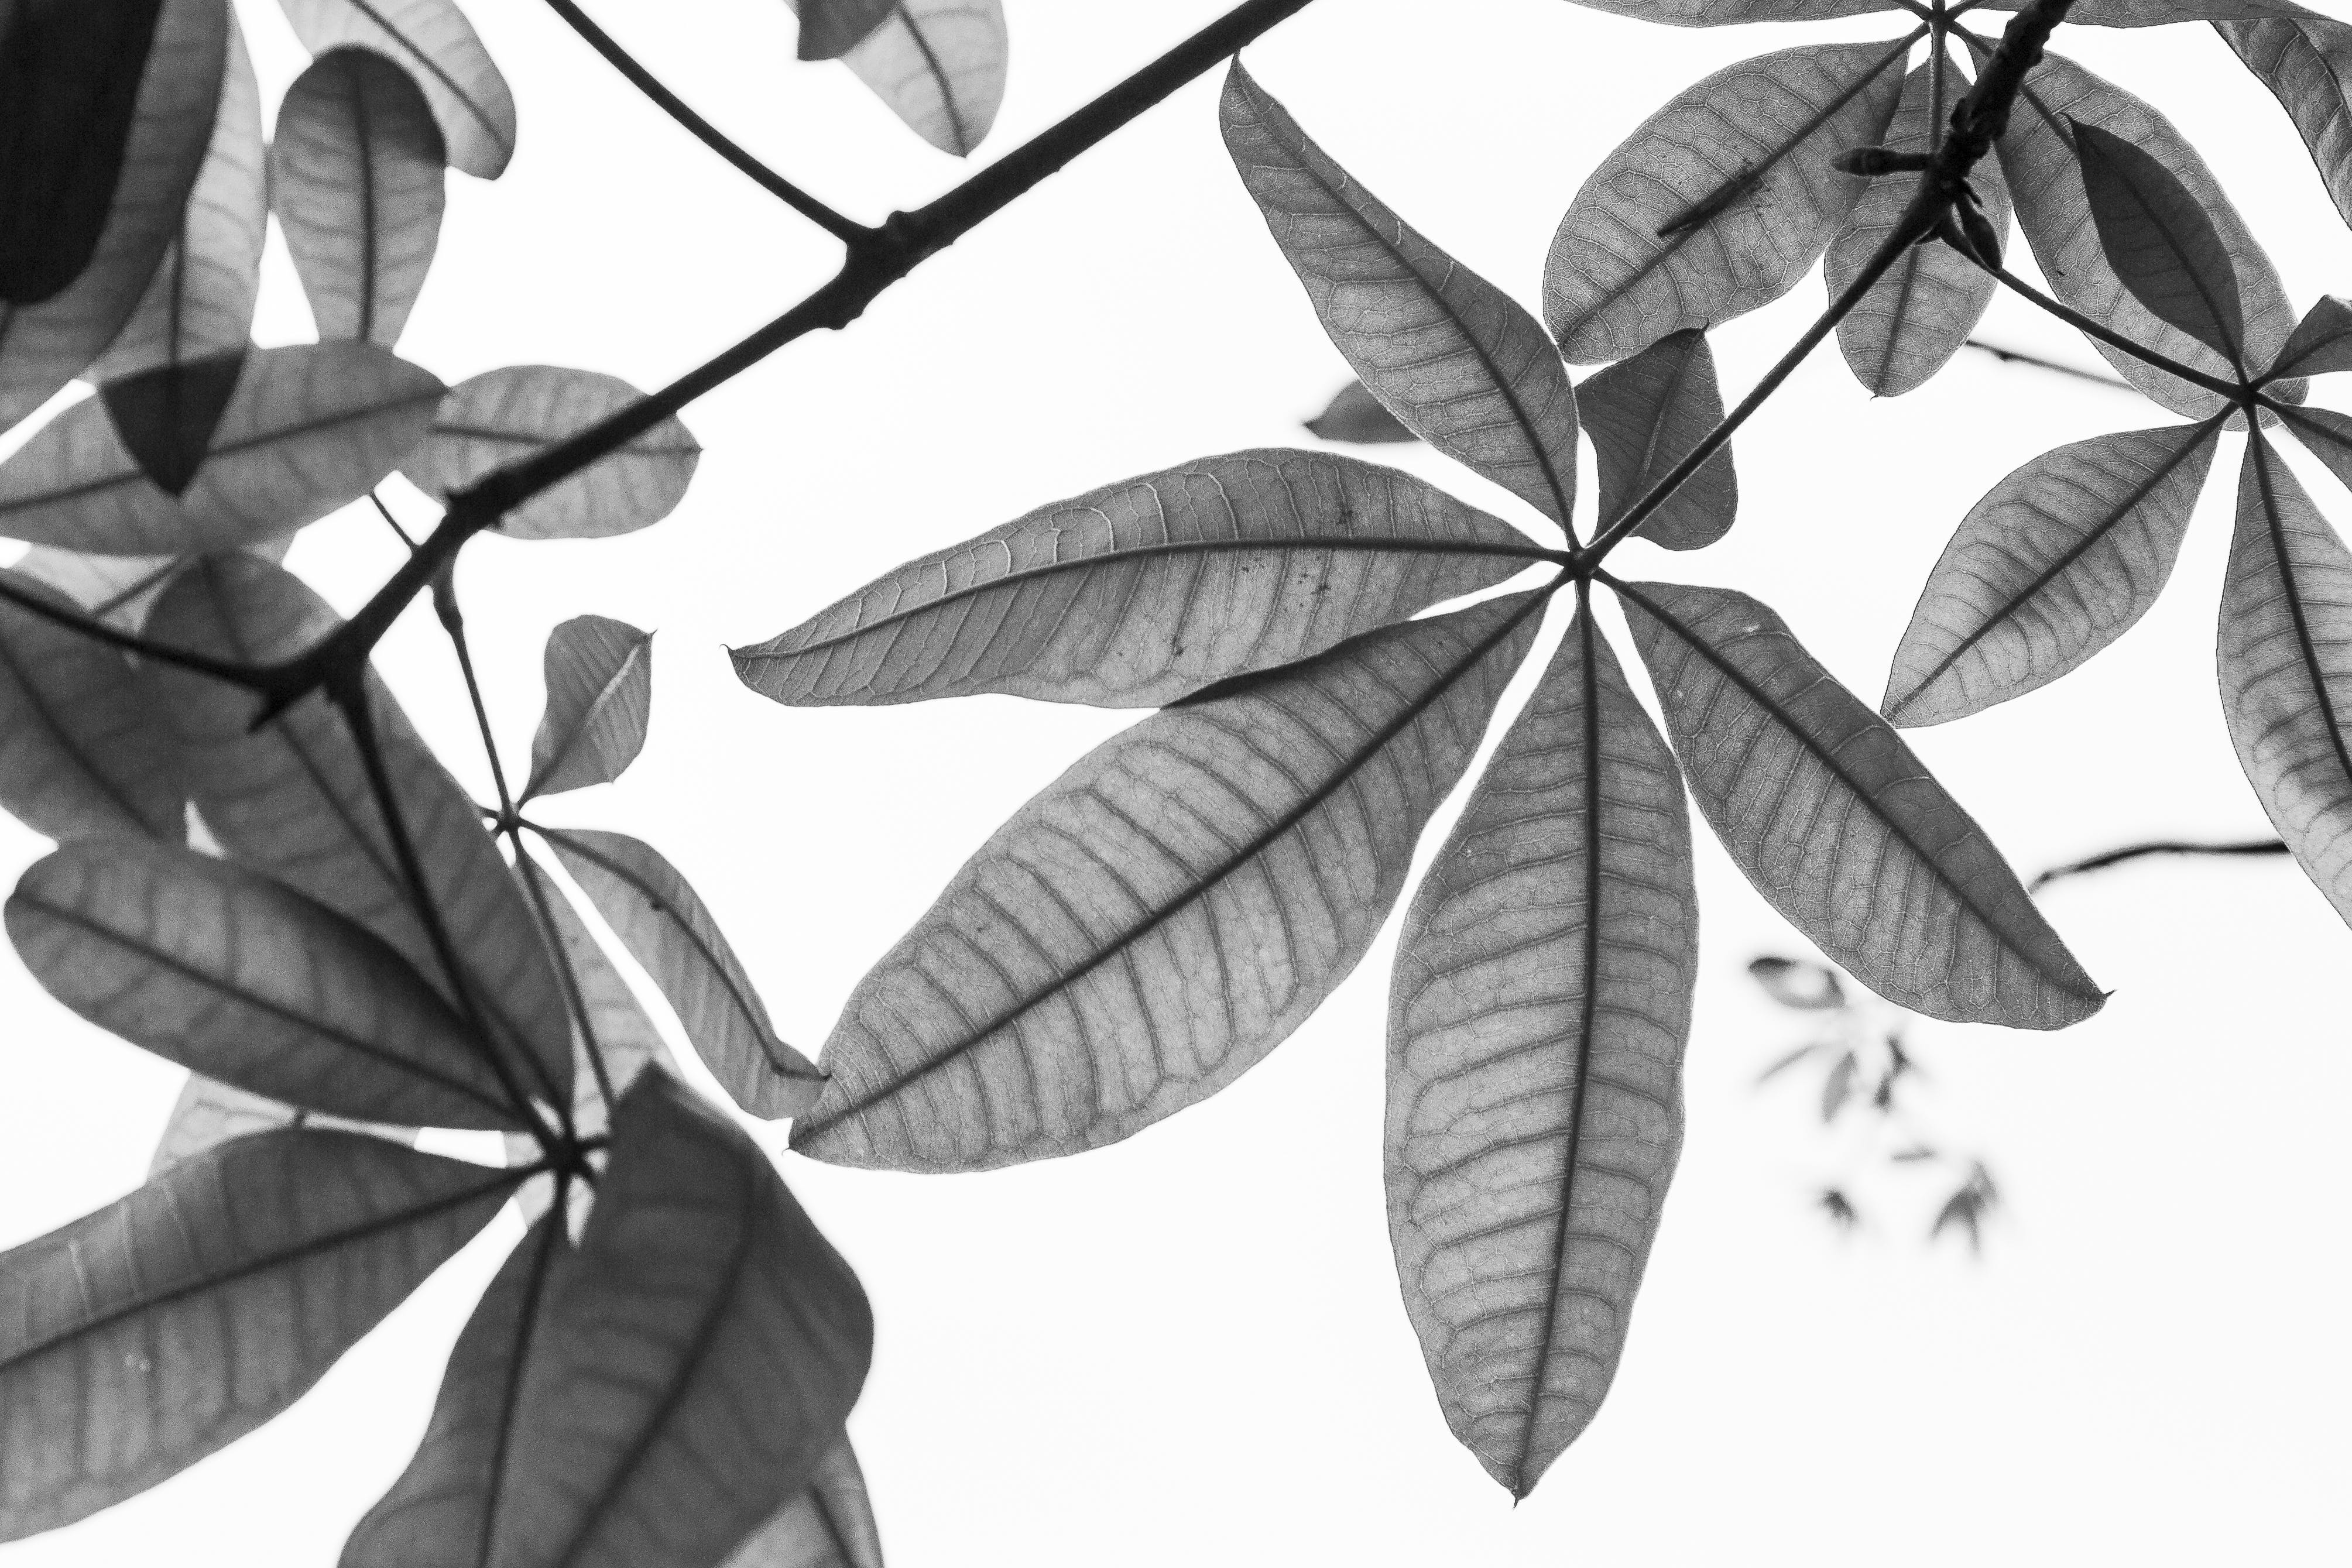 Grayscale Photography of Plant